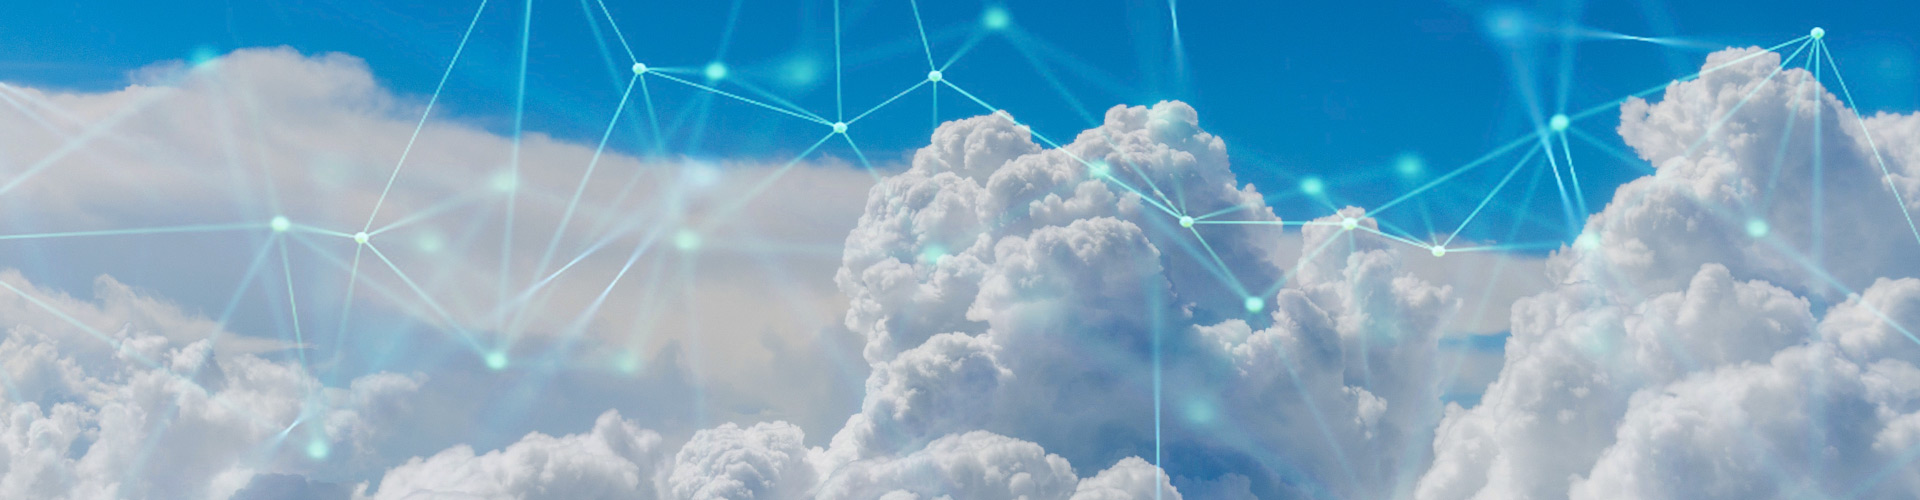 Device-to-cloud communications